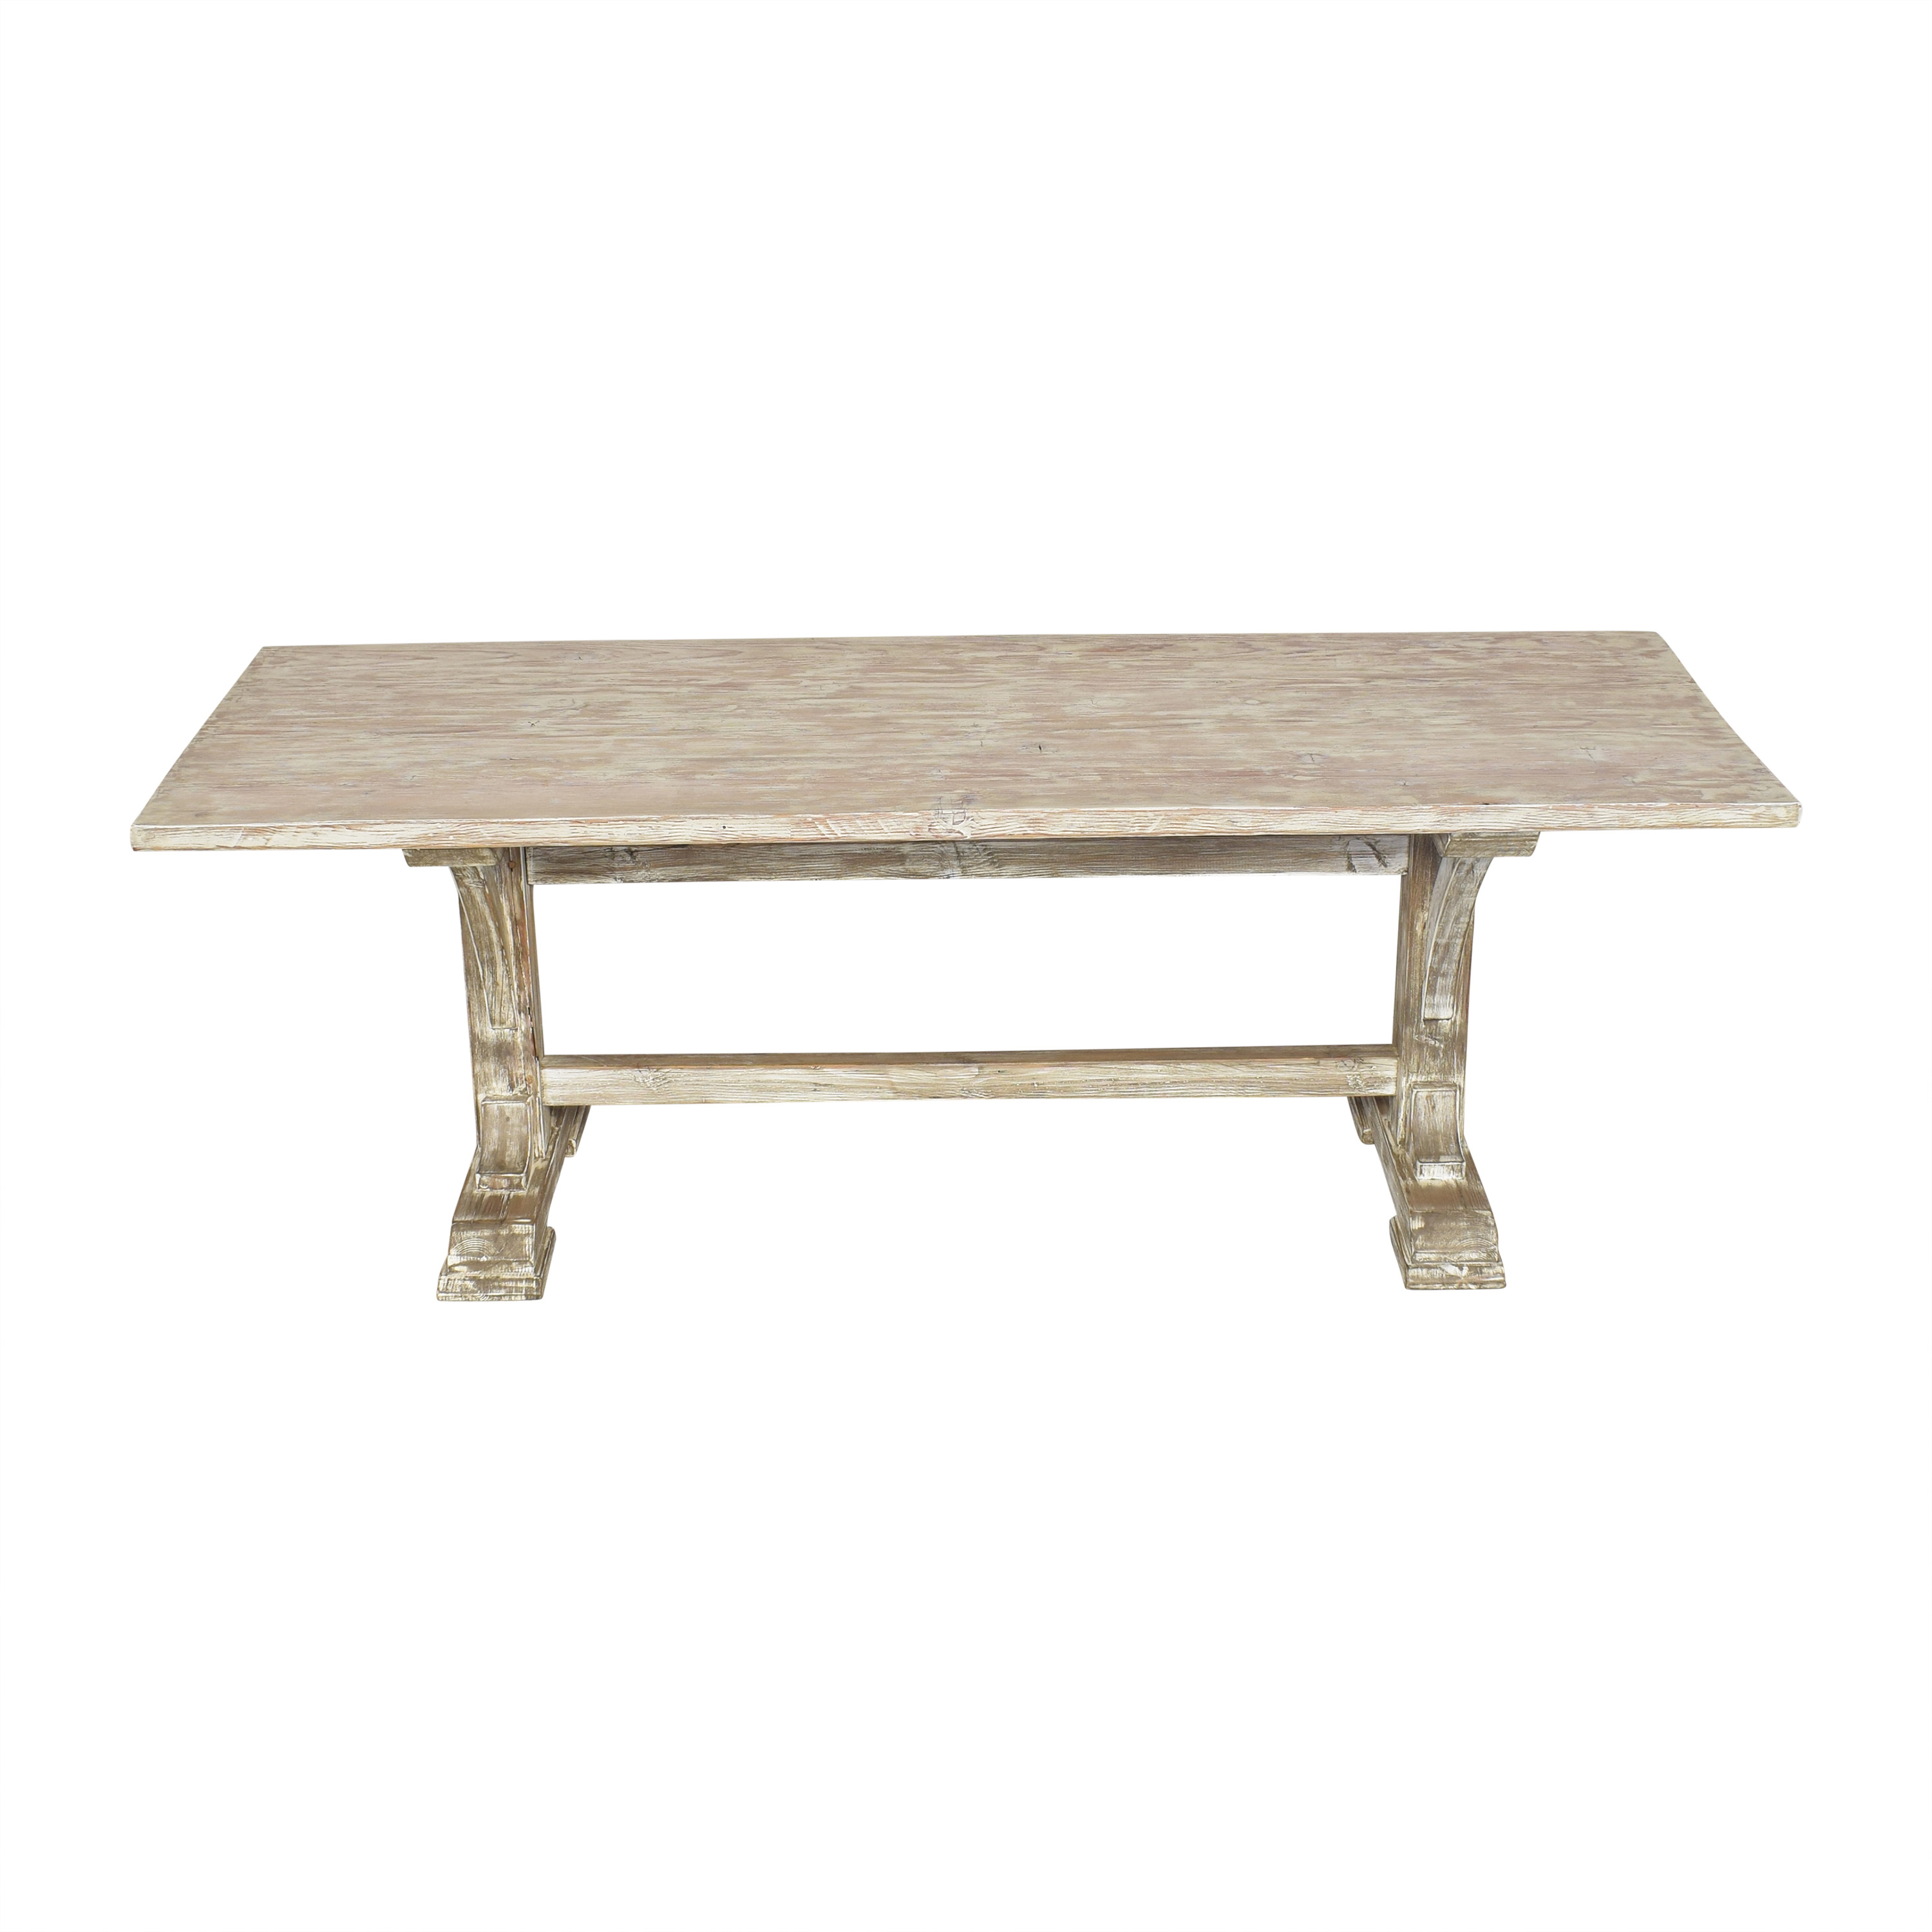 Rustic Trestle Dining Table second hand